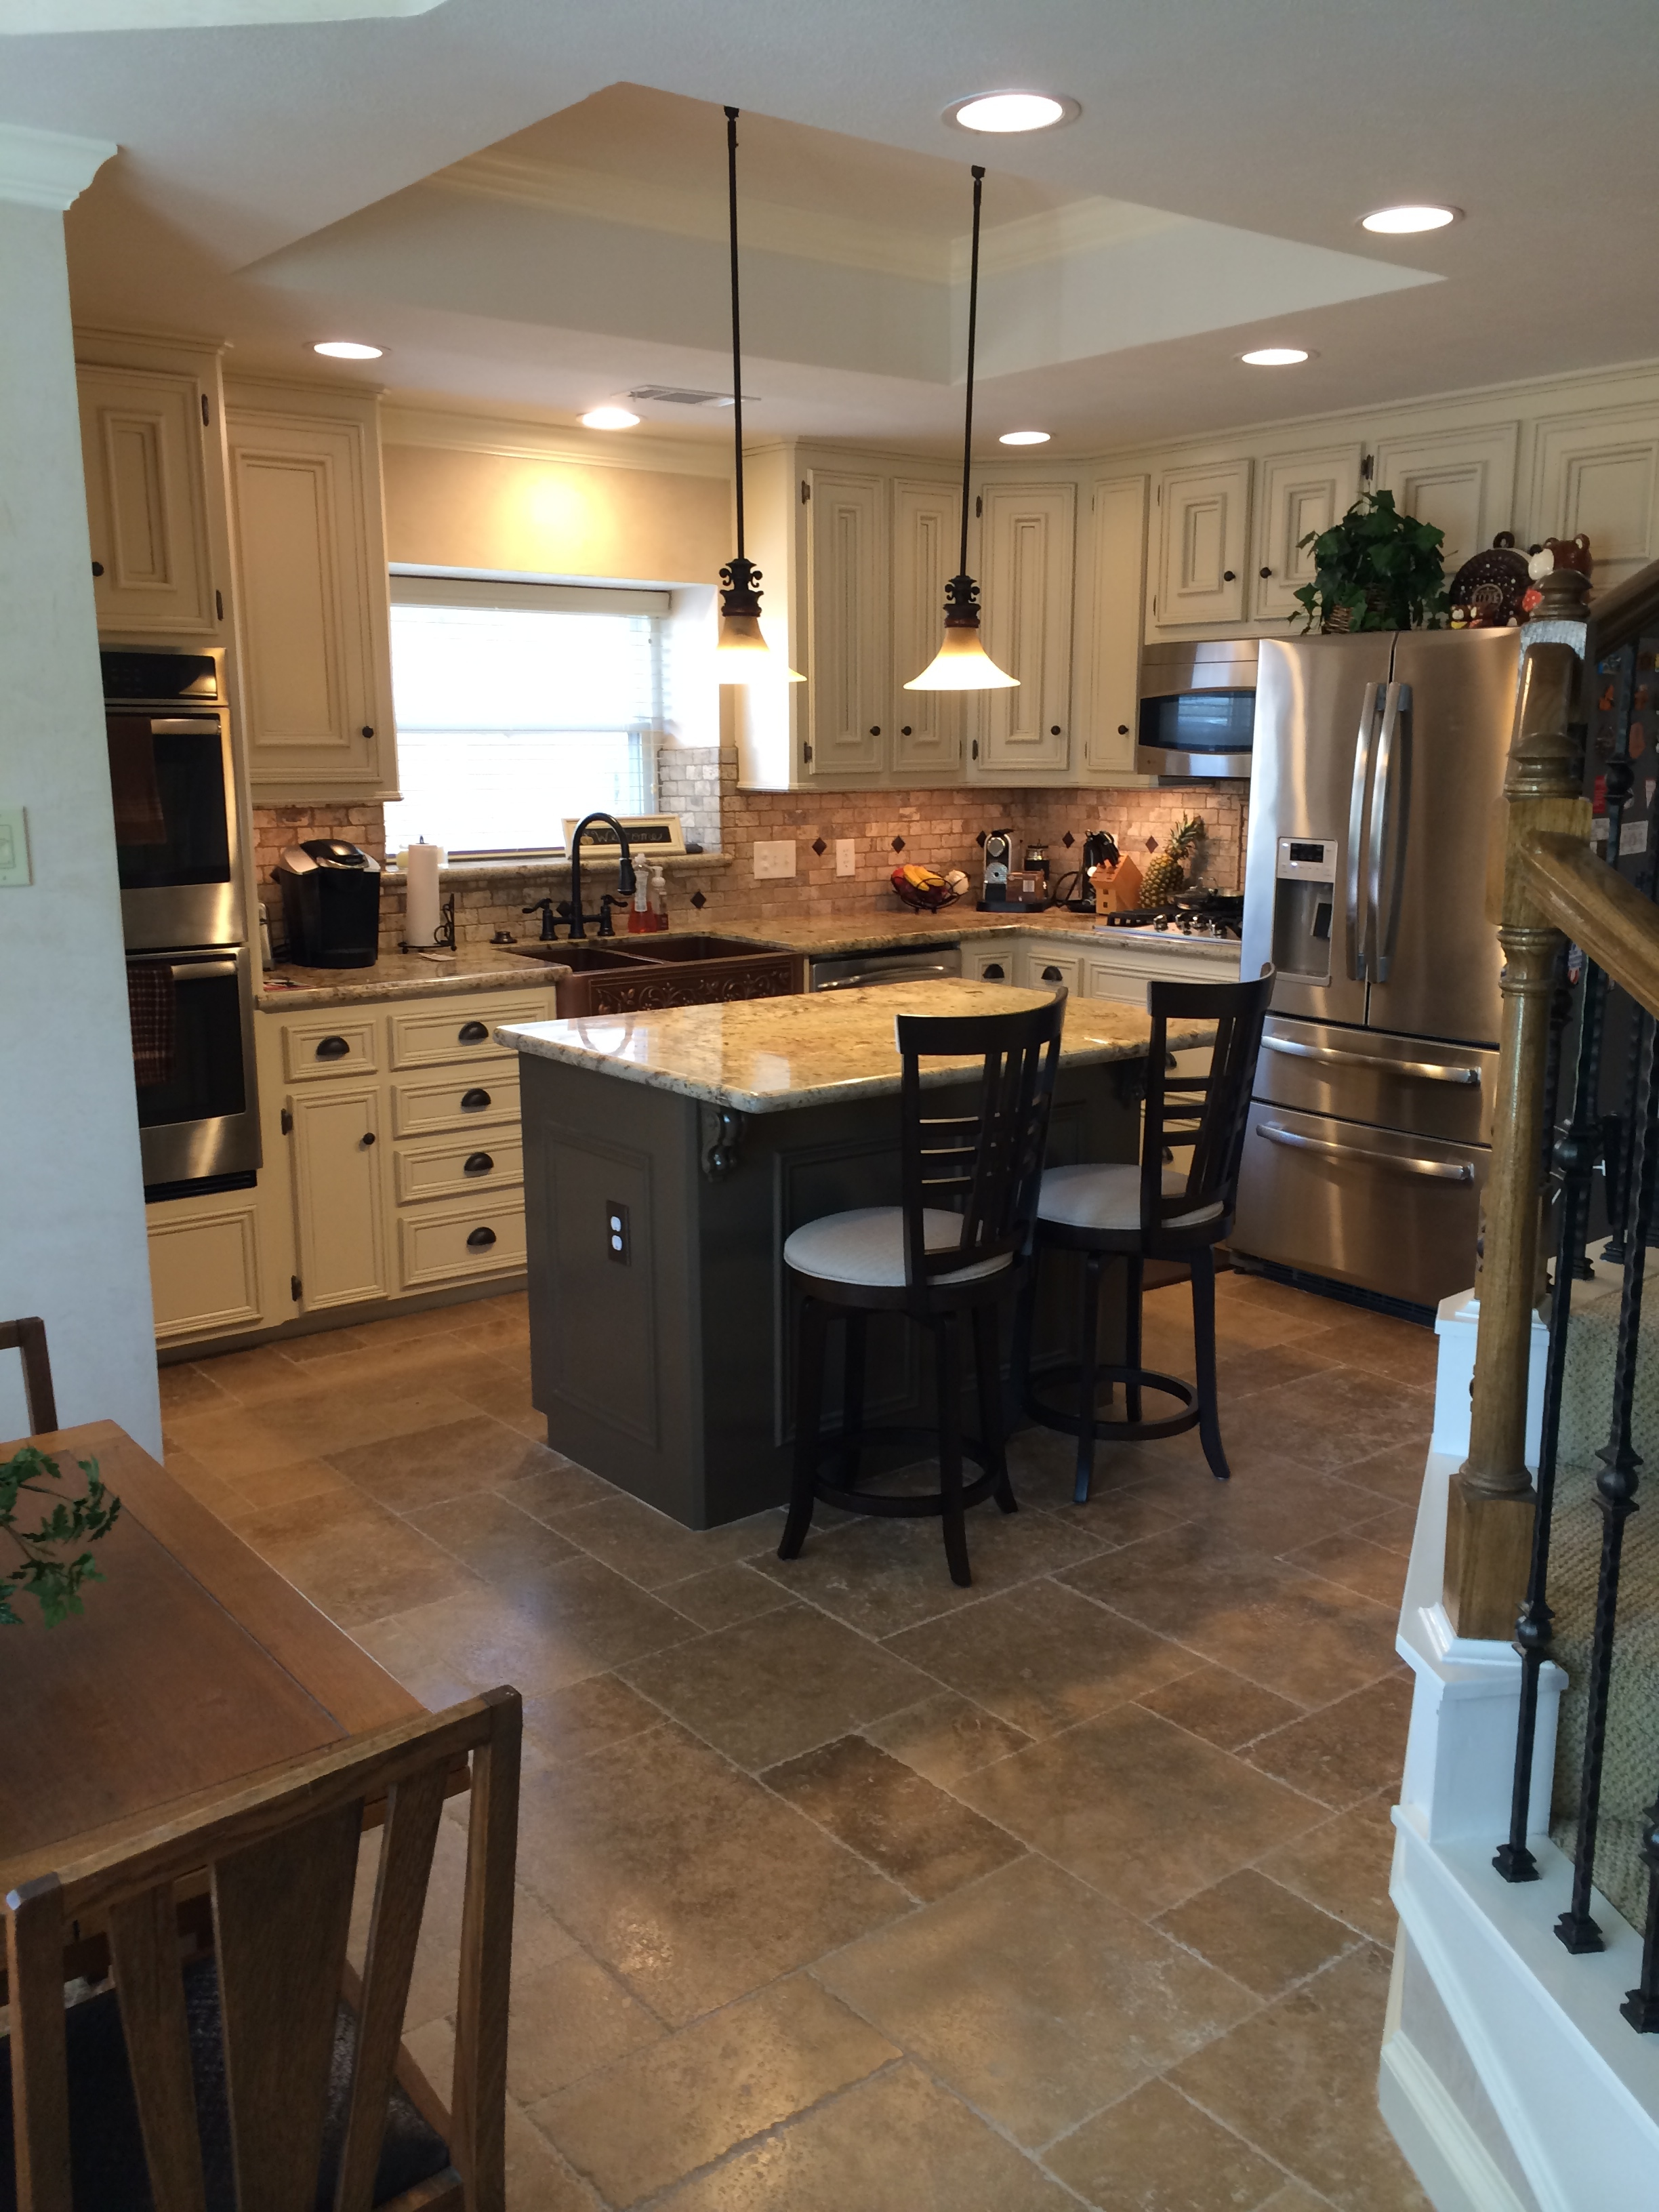 Blonde Woodwork to French Country Kitchen — WHODID IT DESIGN